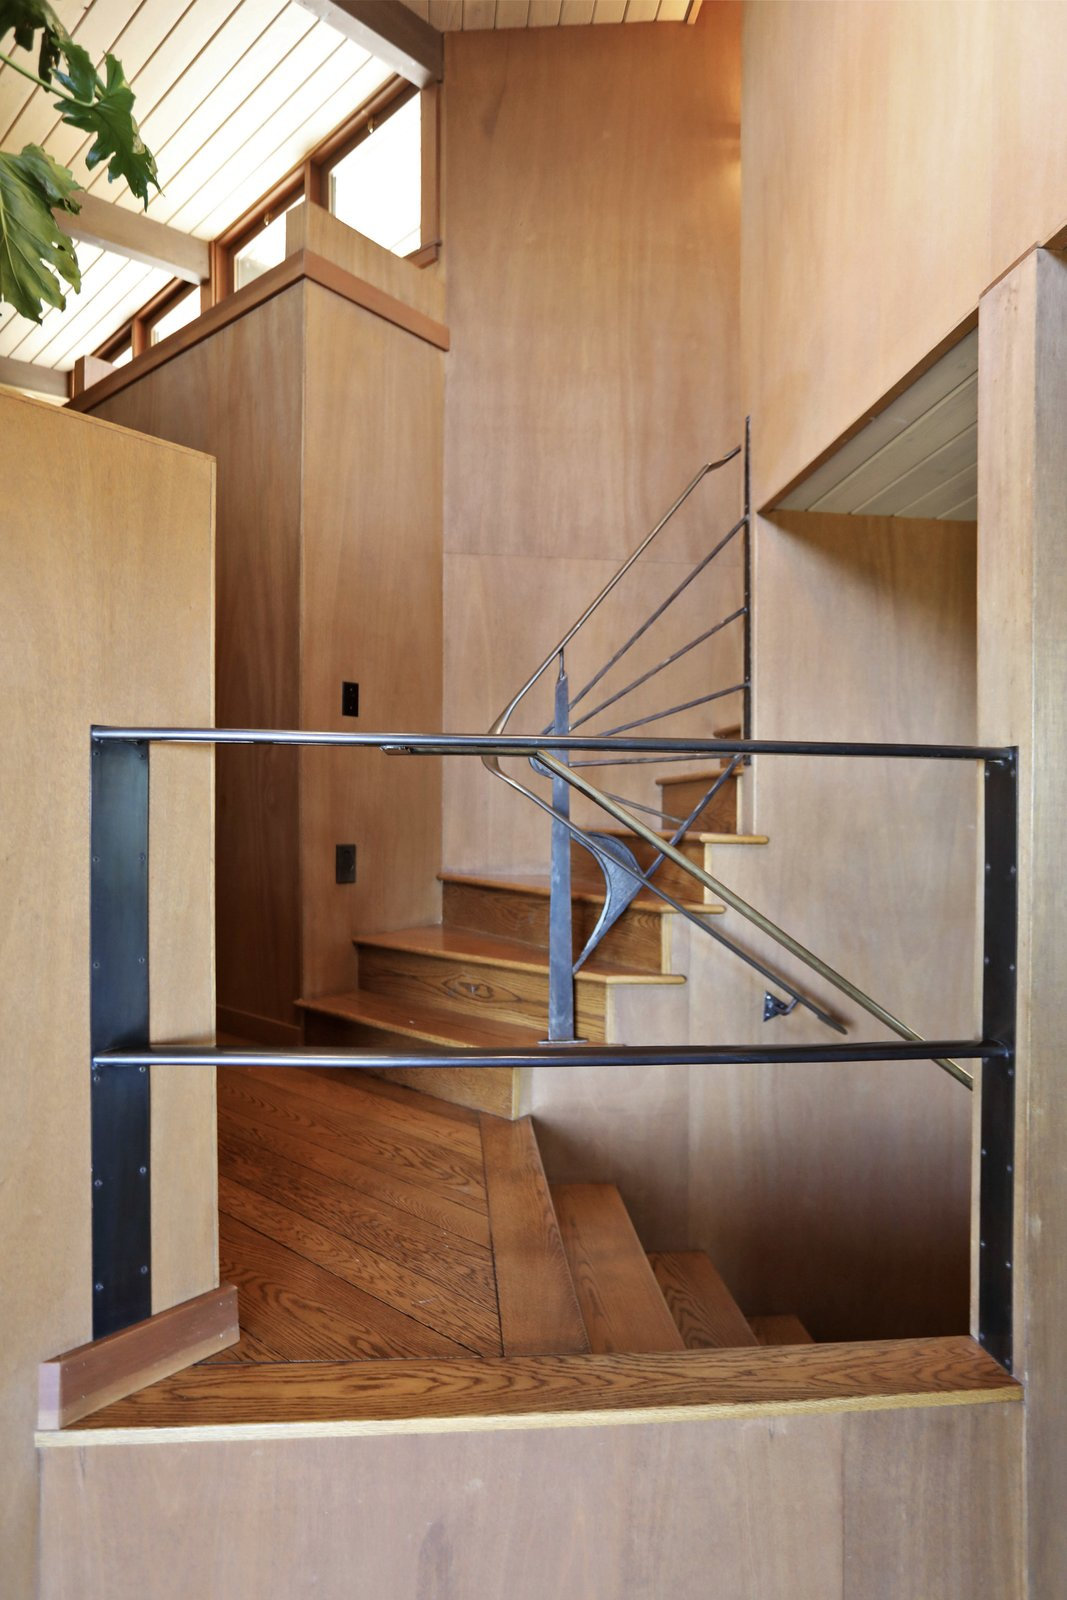 Steel railings define a staircase leading up to the second floor loft and bedrooms.  Photo 10 of 19 in An Alluring Berkeley Hills Home by a Case Study Architect Asks $2.9M